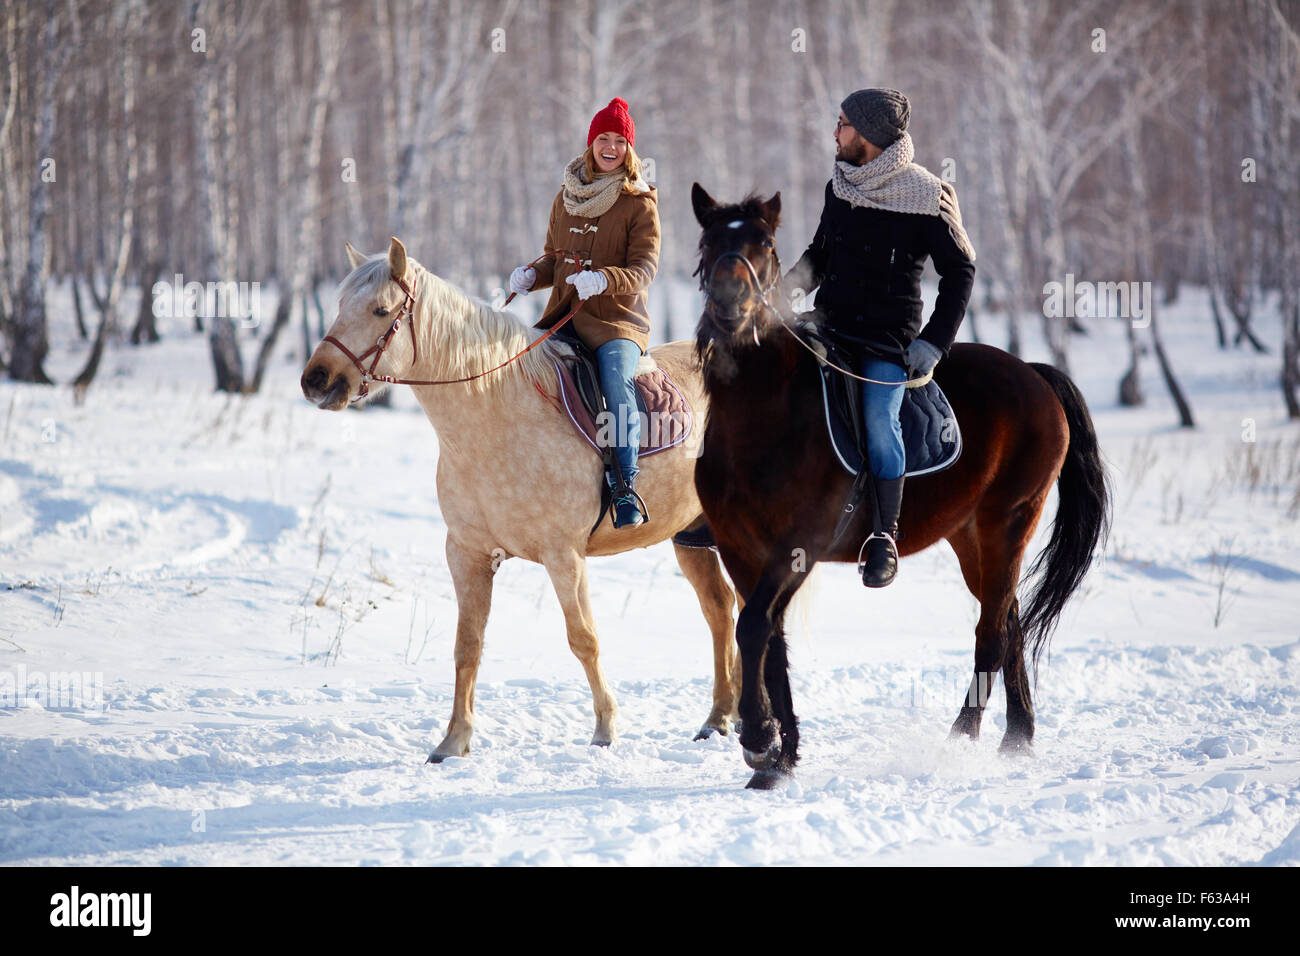 Happy Couple Horse Riding In The Forest Stock Photo Alamy